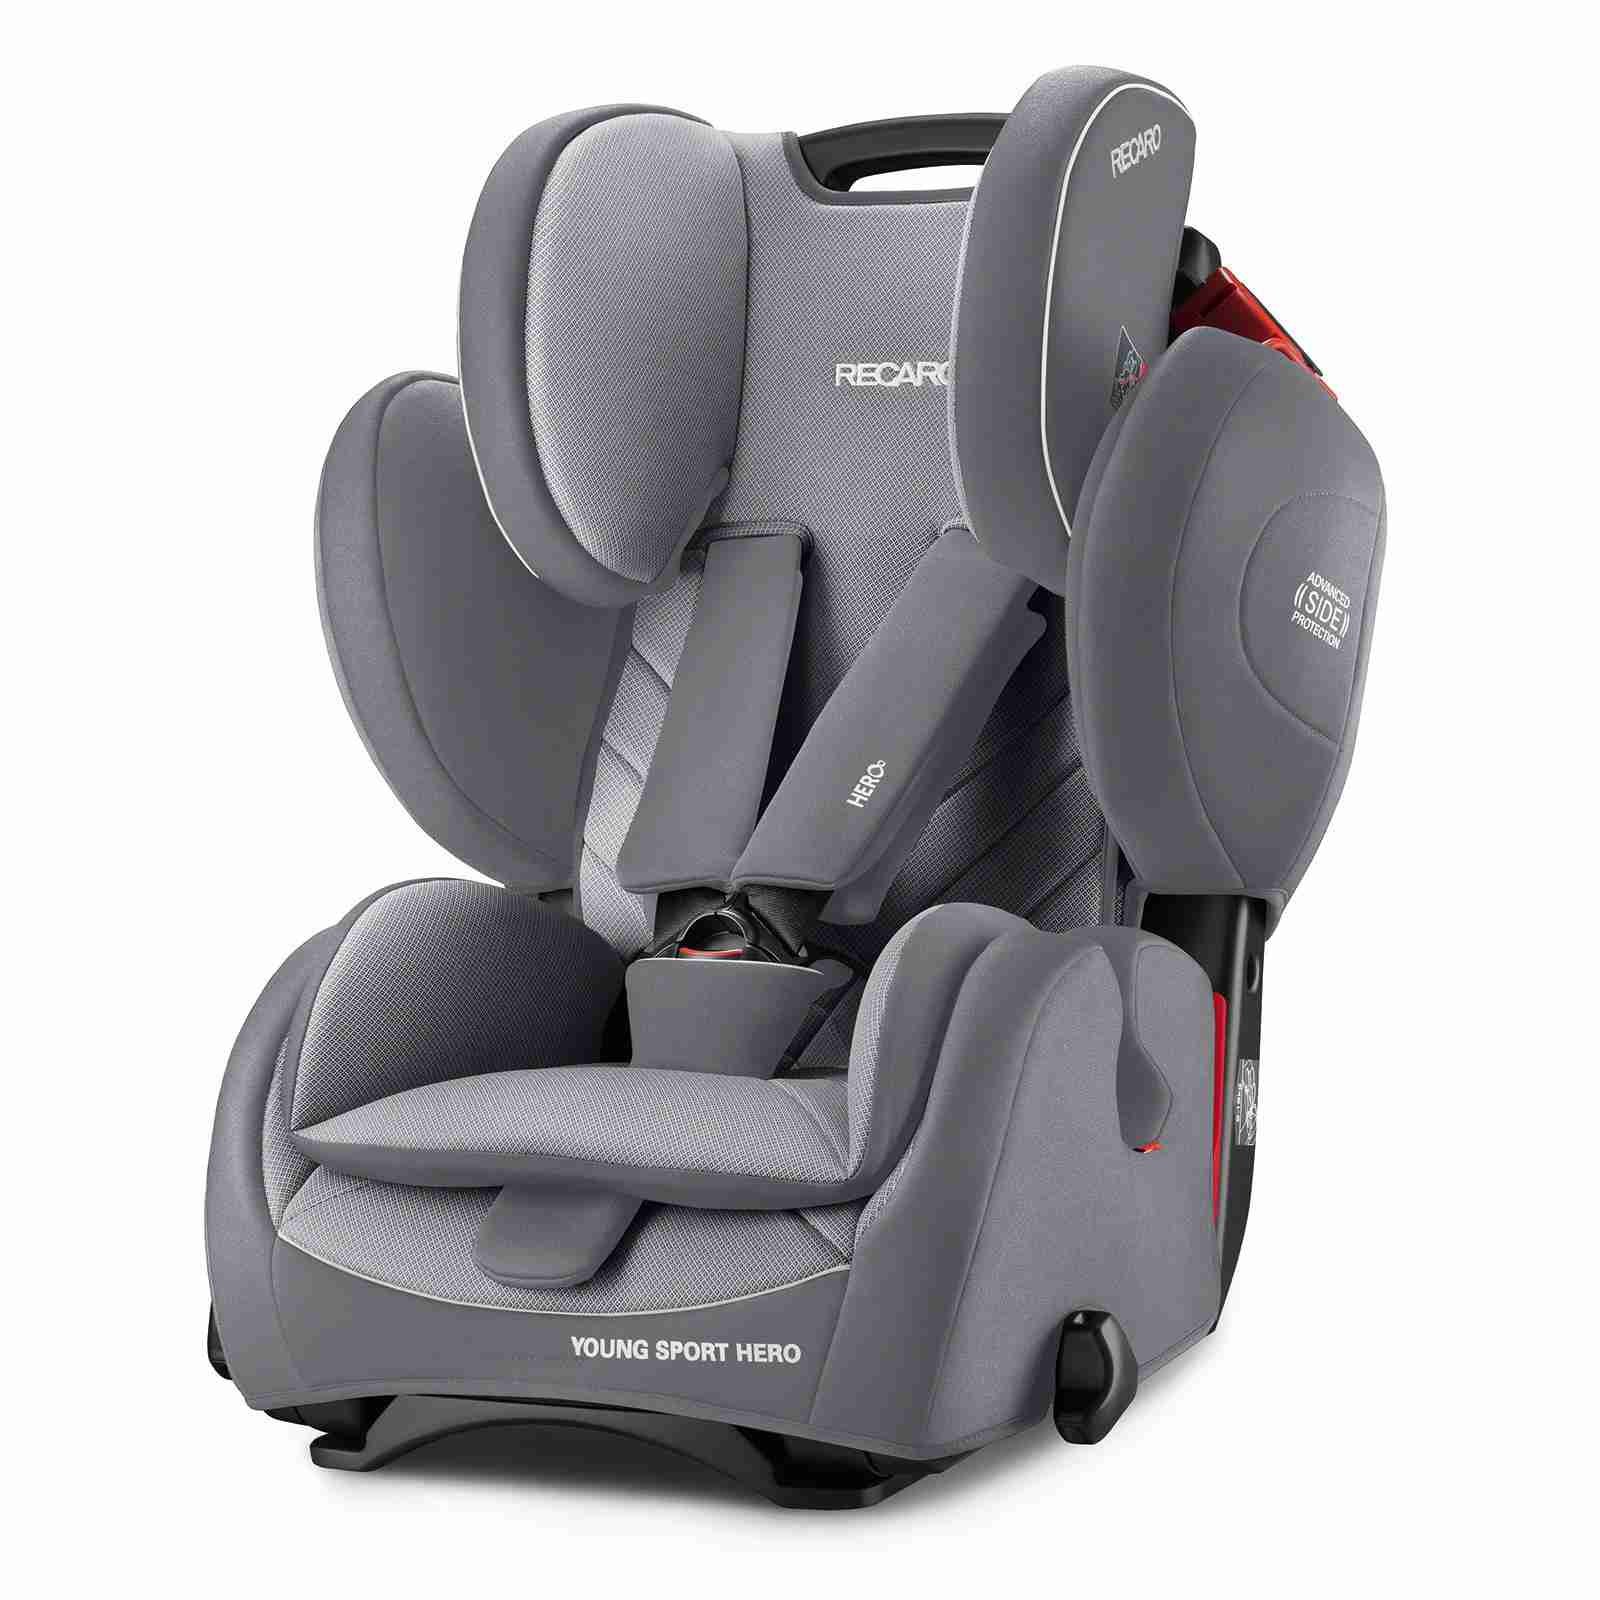 recaro young sport hero 1 2 3 autostoel aluminium grey beste keuze autostoel. Black Bedroom Furniture Sets. Home Design Ideas